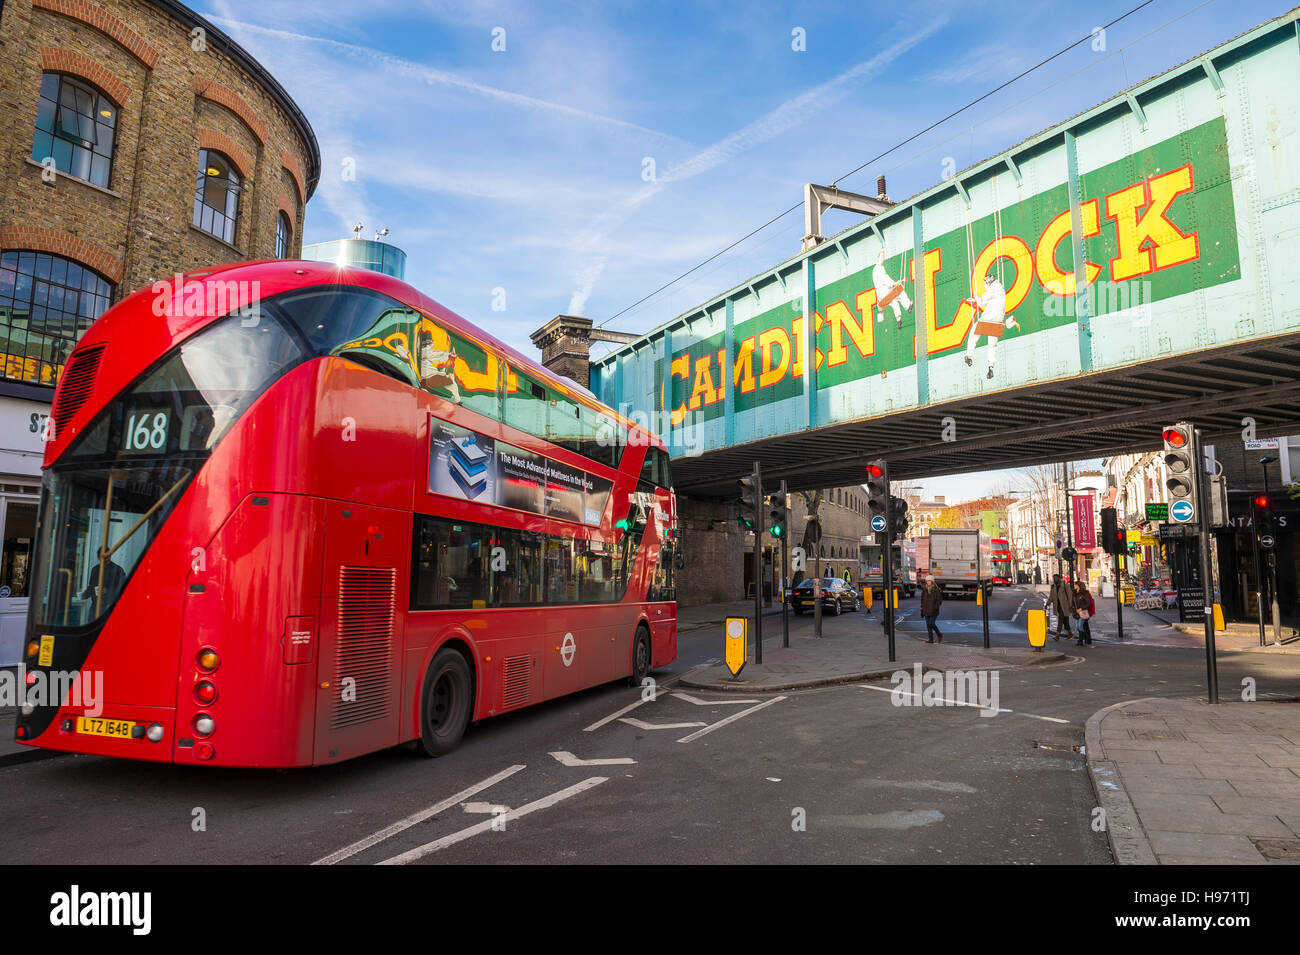 LONDON - NOVEMBER 16, 2016: A red double-decker bus passes under a railway overpass at the popular Camden Lock Market. Stock Photo